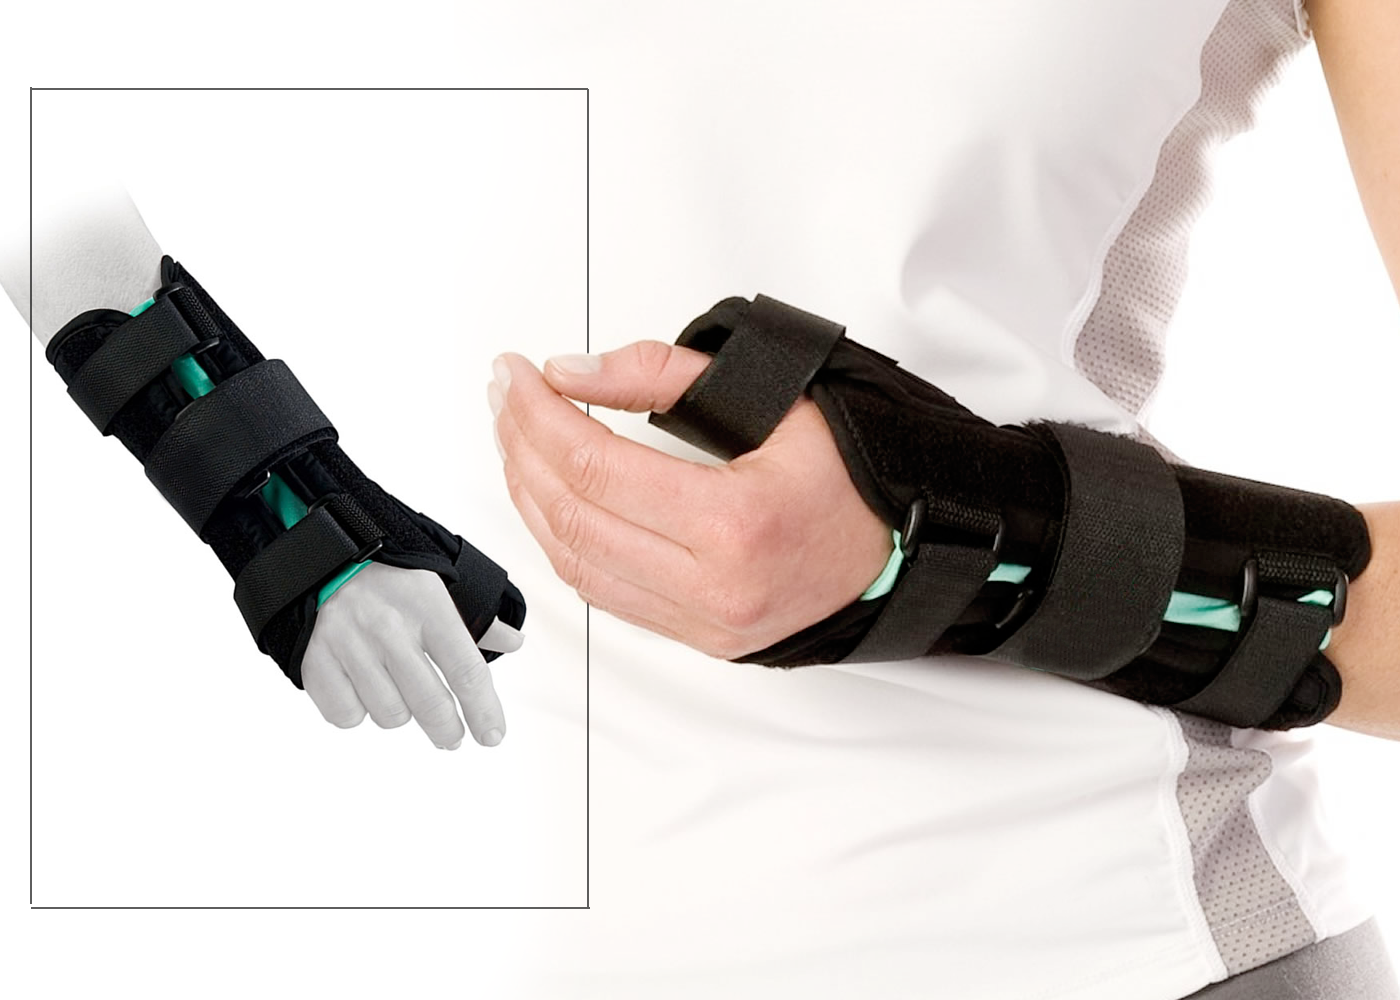 A patient and diagram wearing custom wrist braces